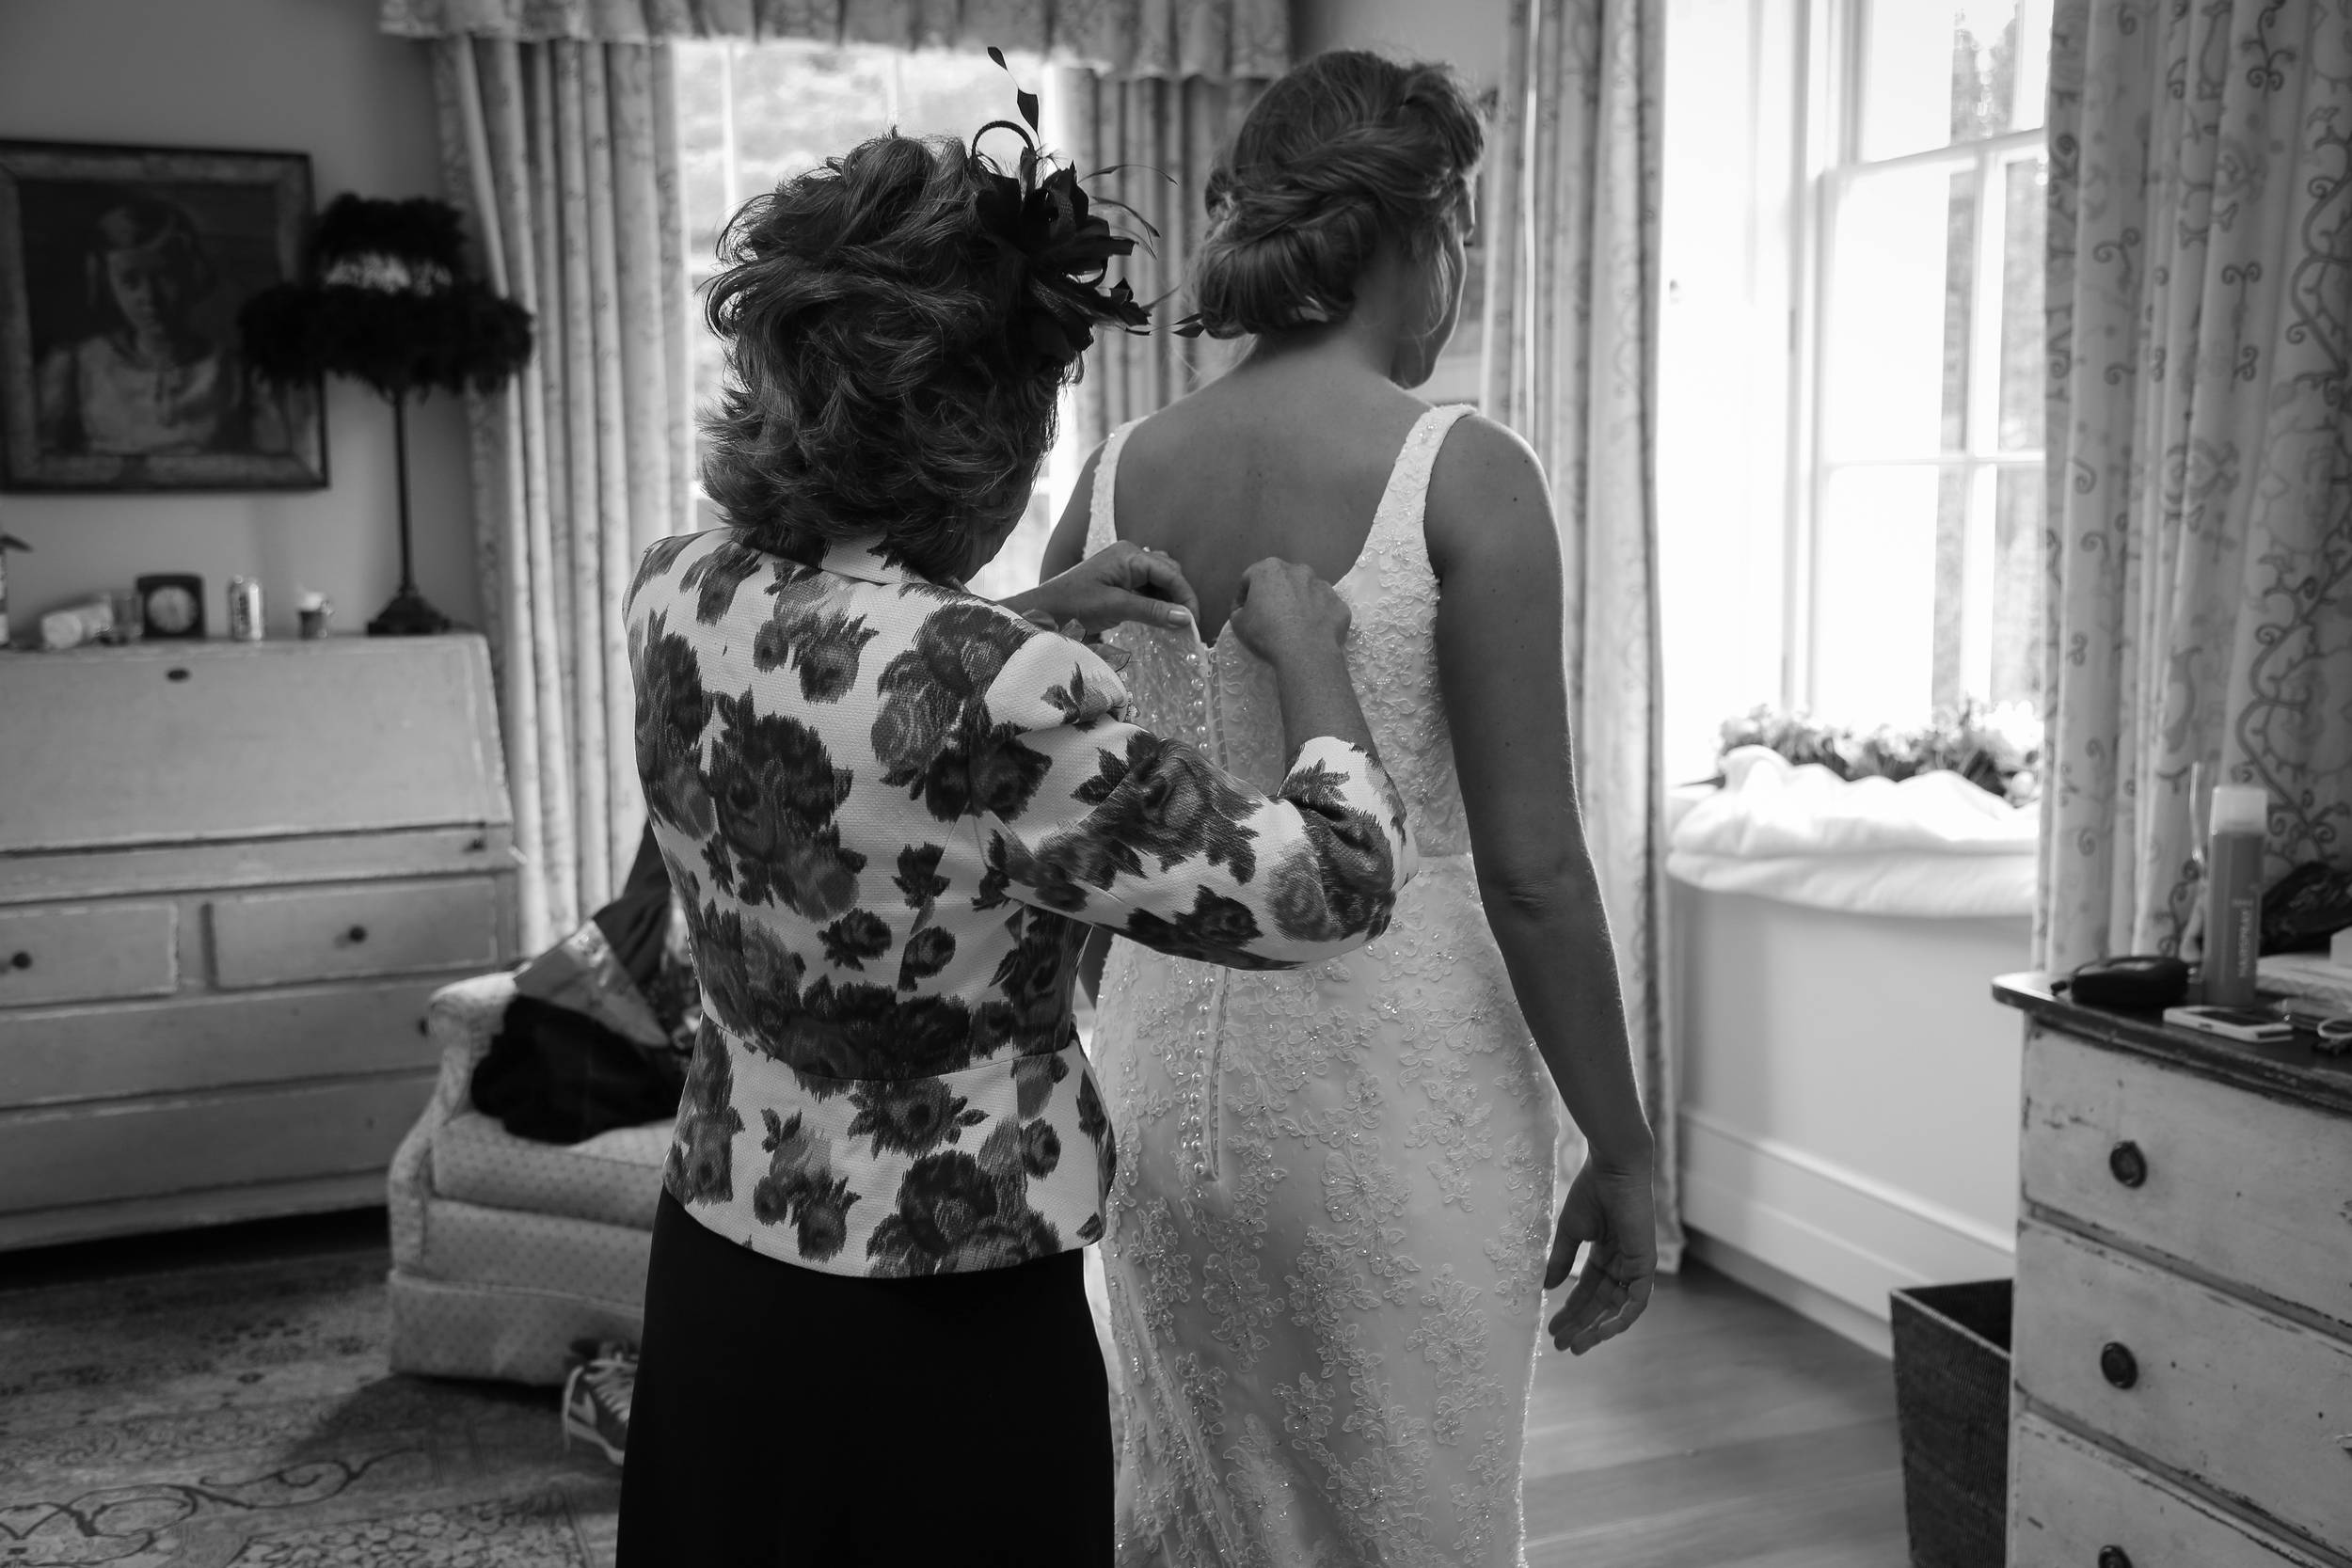 Julia and her mum Hilary on the morning of her wedding. Such a special moment for mother and daughter.